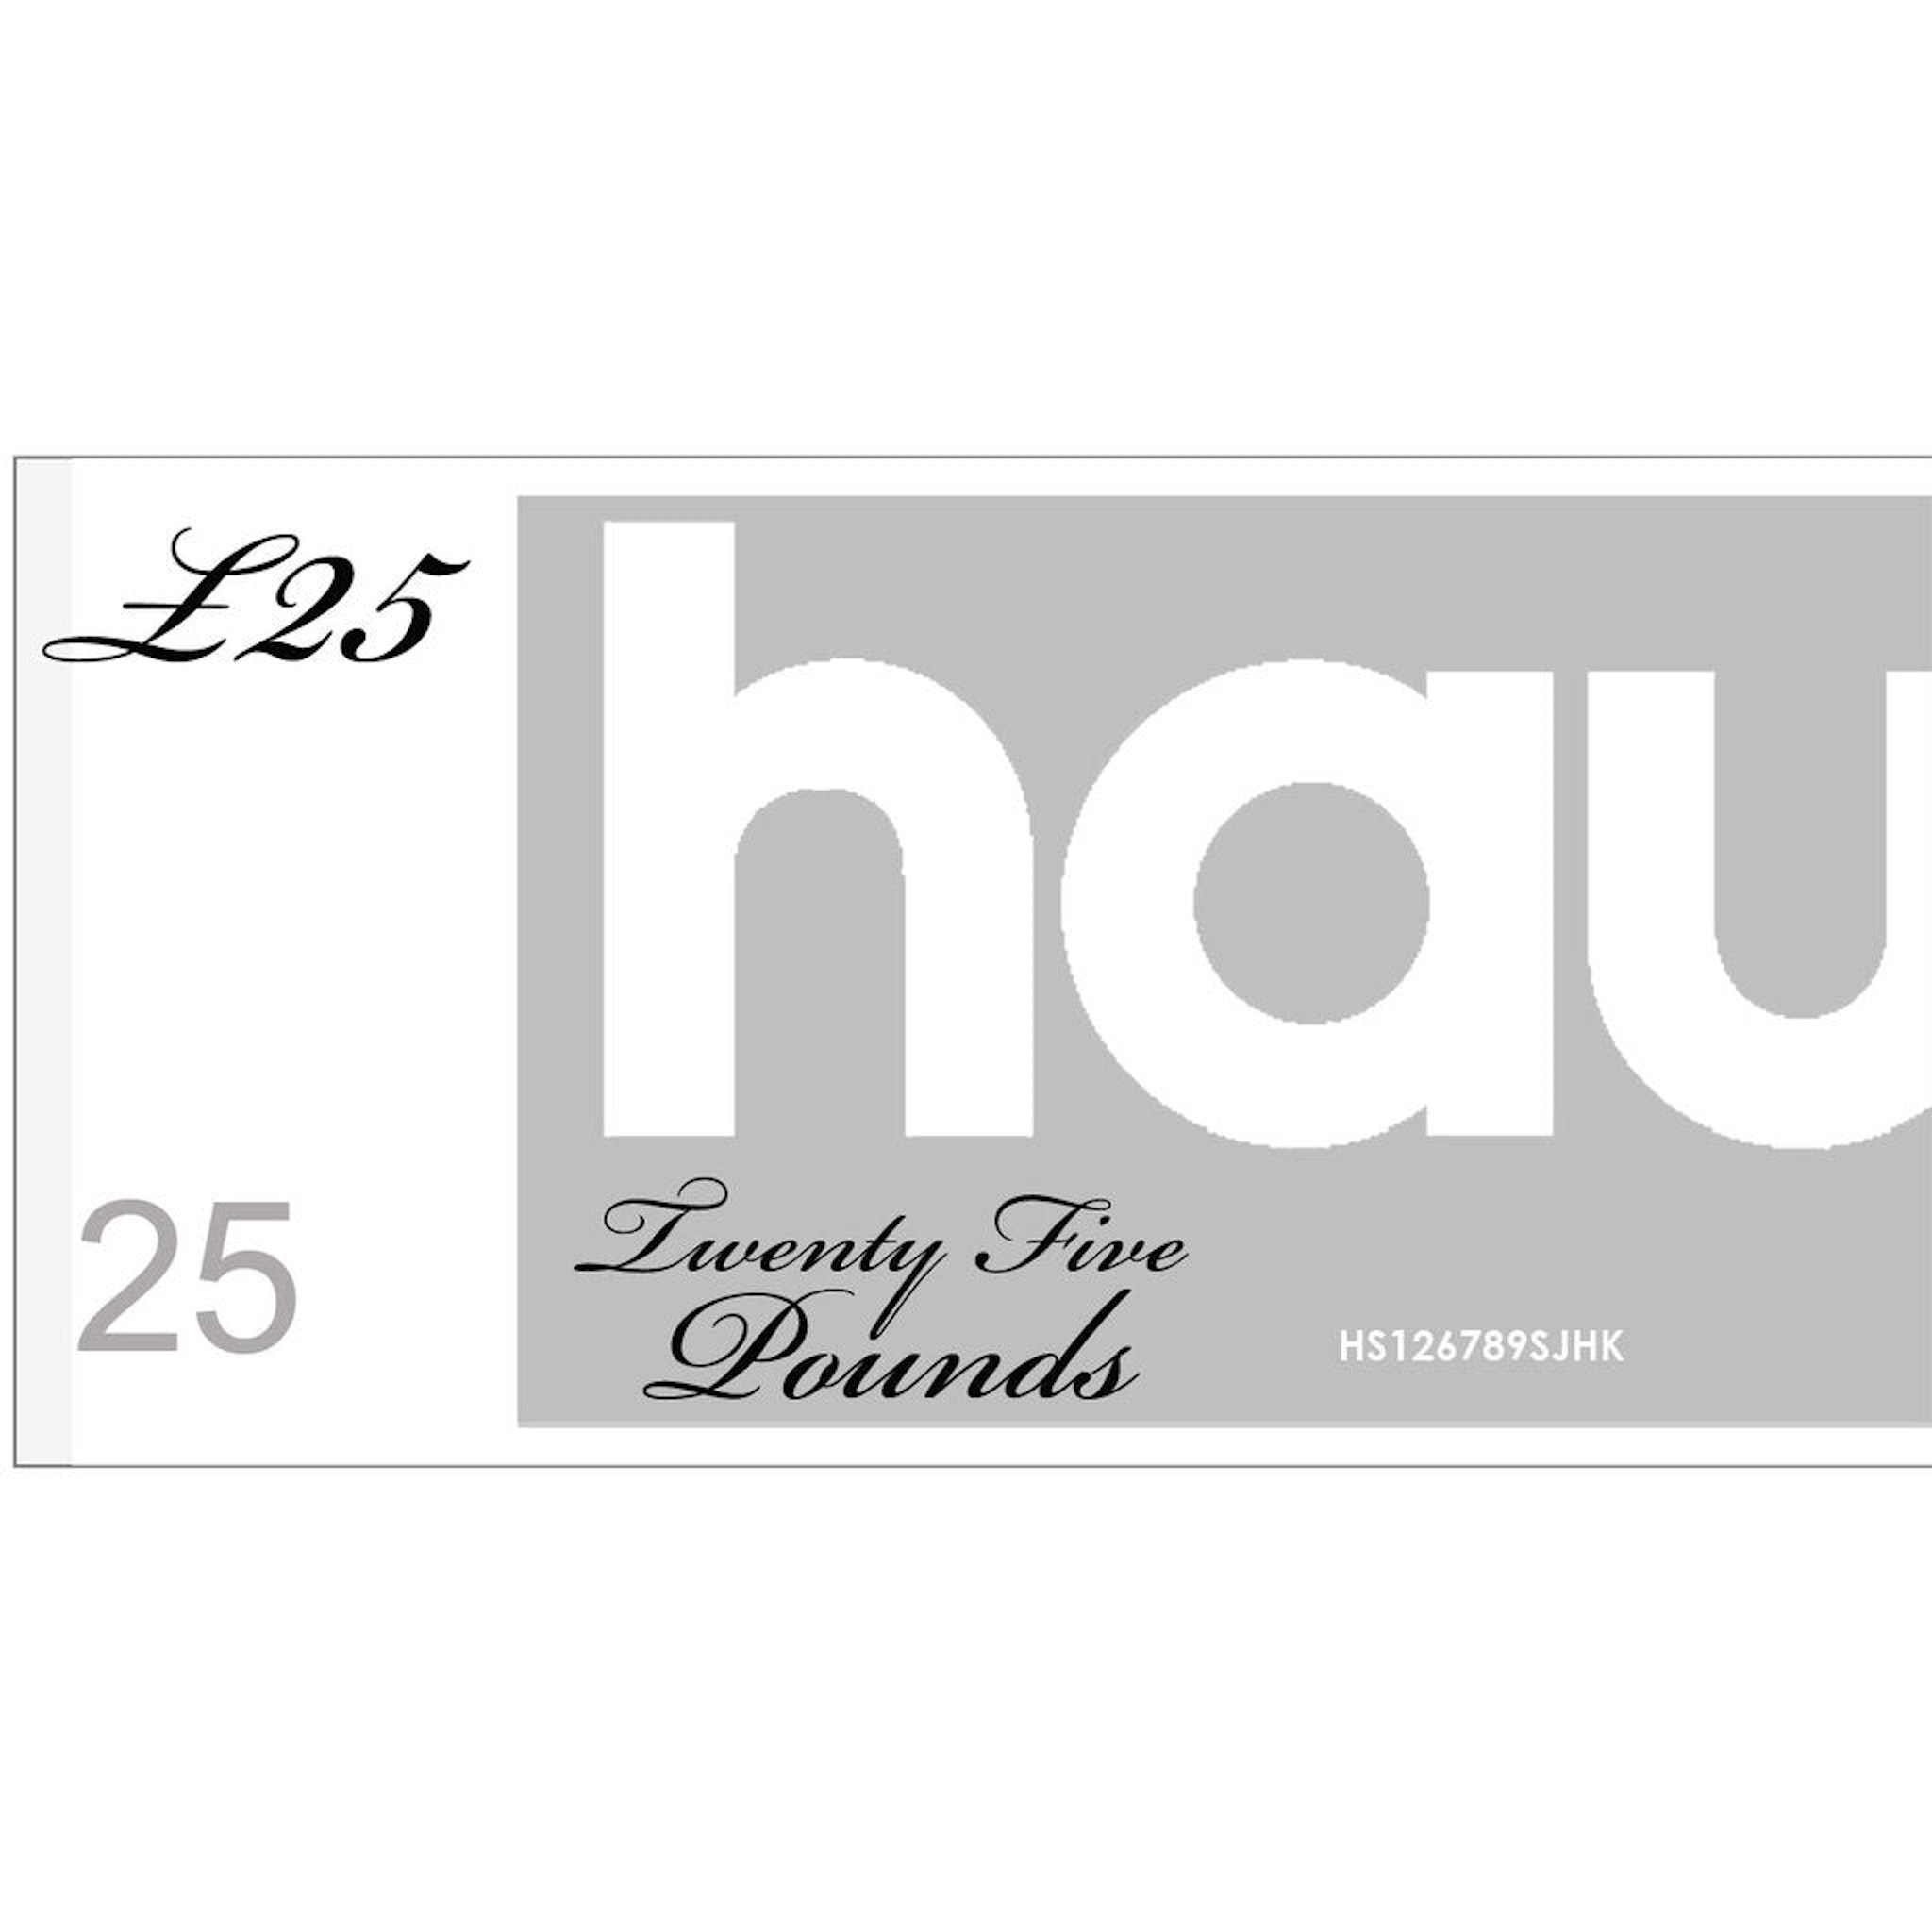 HAUS GIFT VOUCHER - VALUE £25 - for Christopher and Stephen